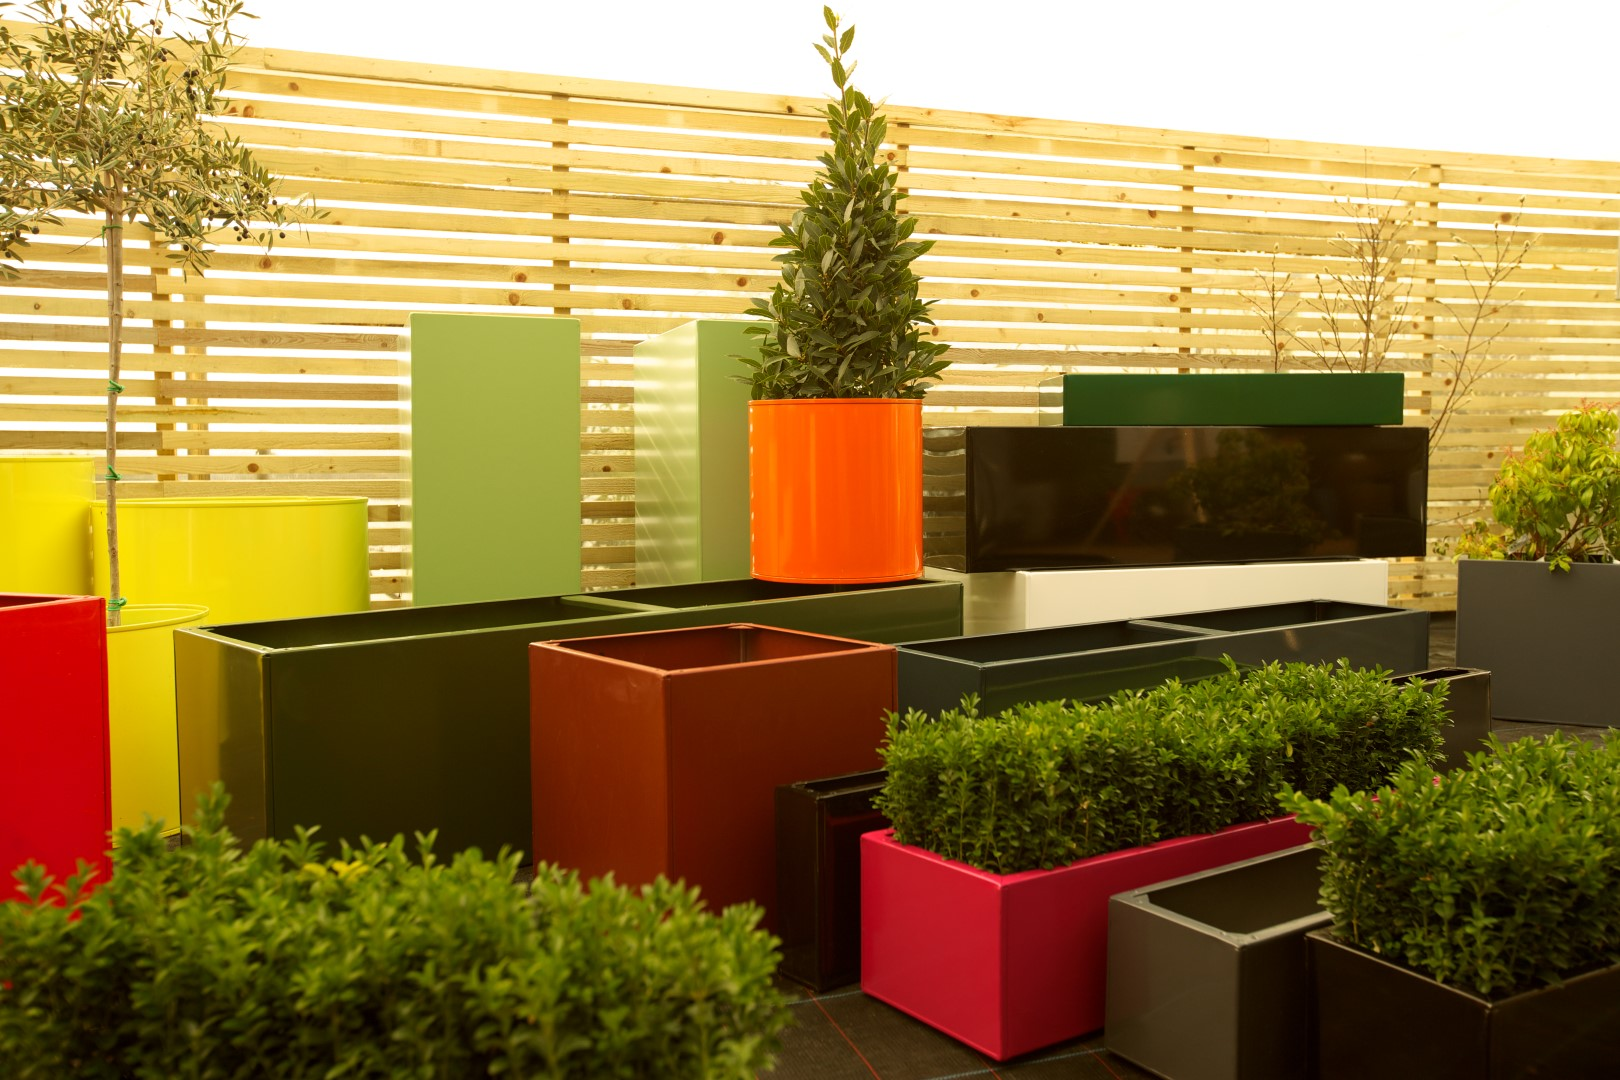 Made-to-measure planters revolutionise container design